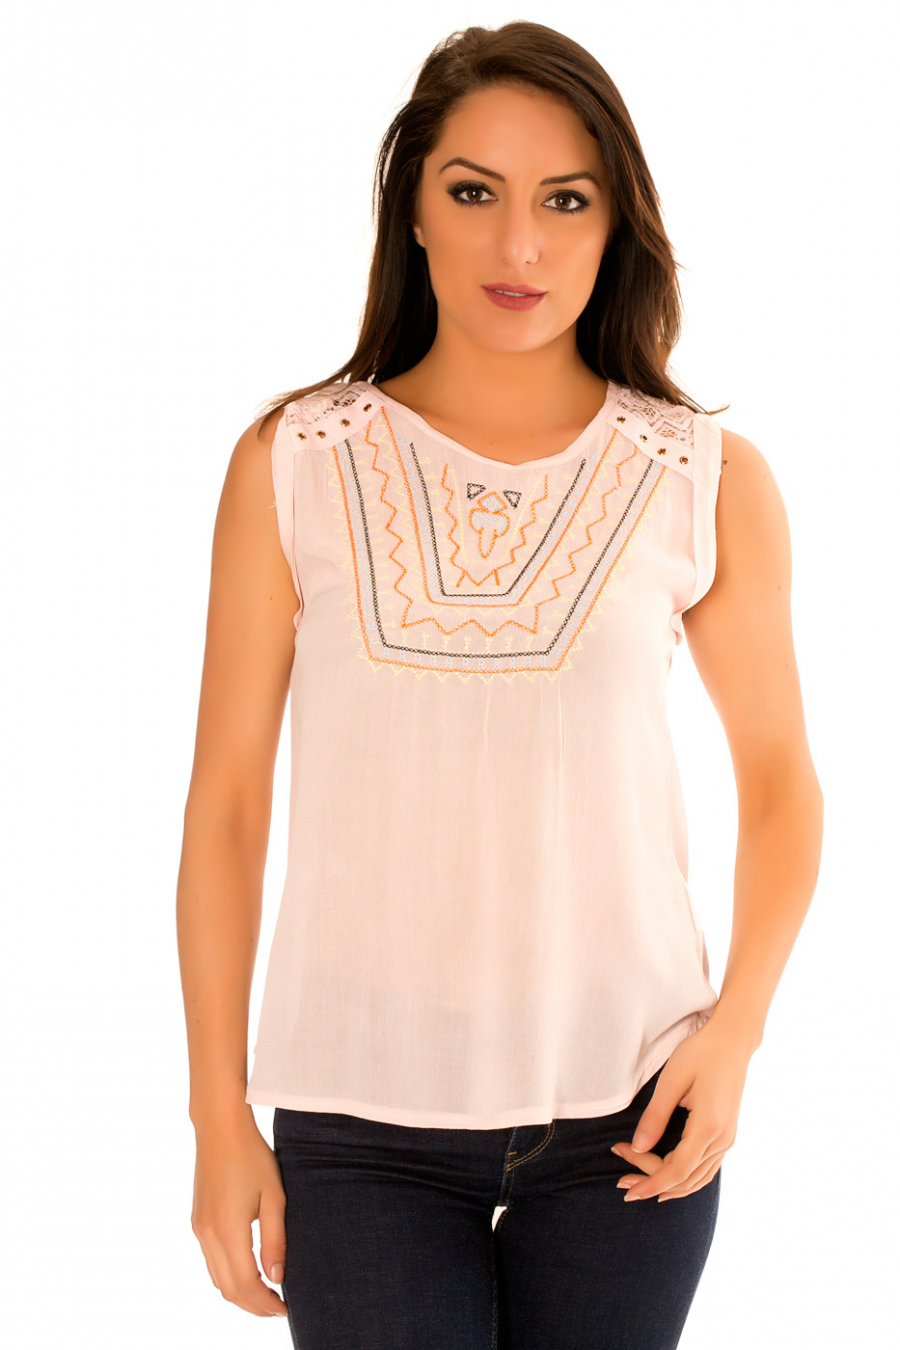 Pink round neck top with embroidery, lace on the shoulders at the back. F9912